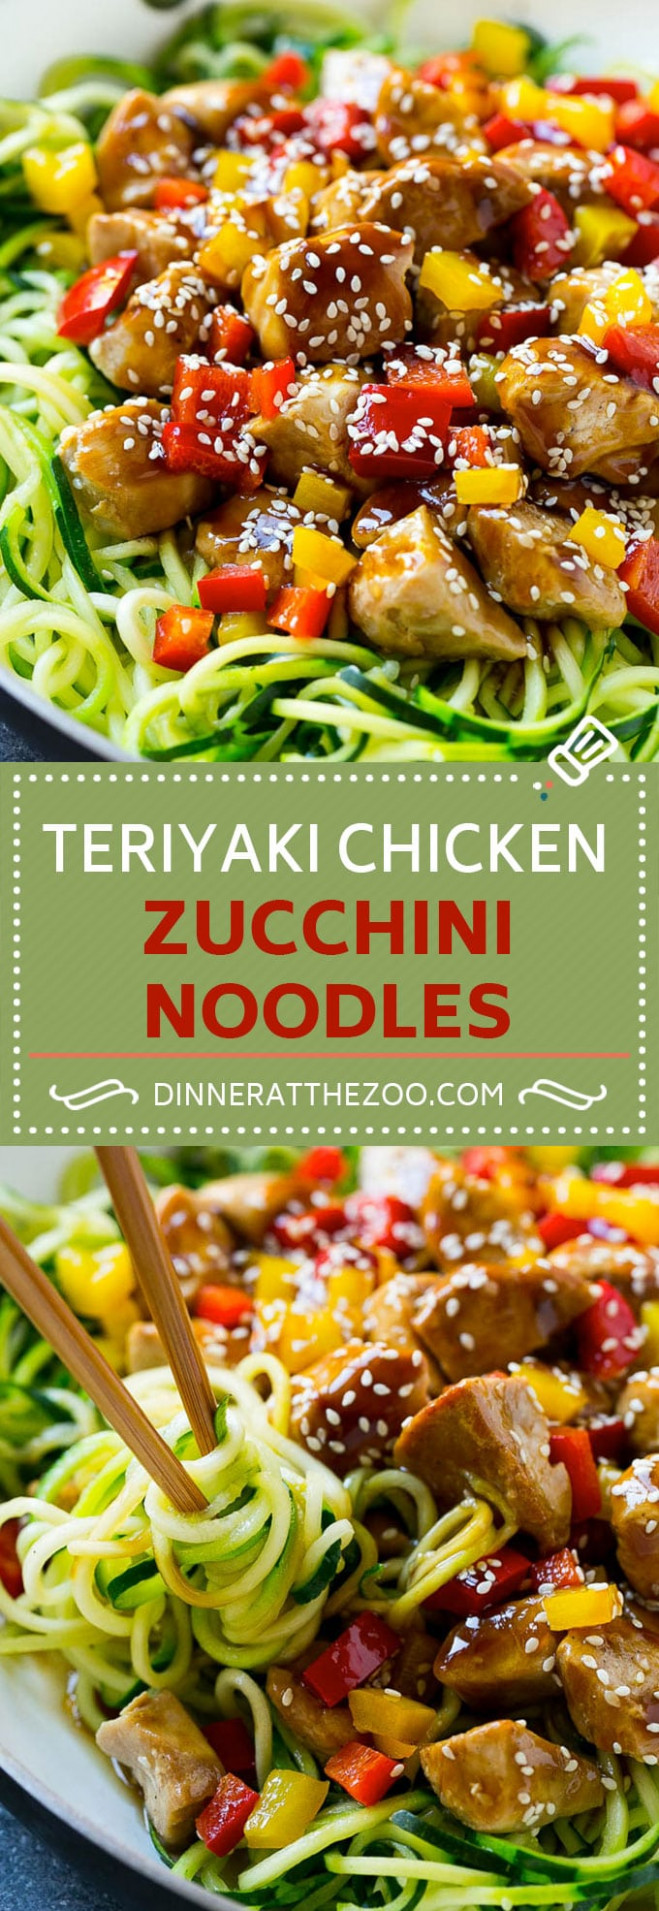 15 Healthy Zoodle (Zucchini Noodle) Recipes - Dinner at the Zoo - dinner recipes with zoodles